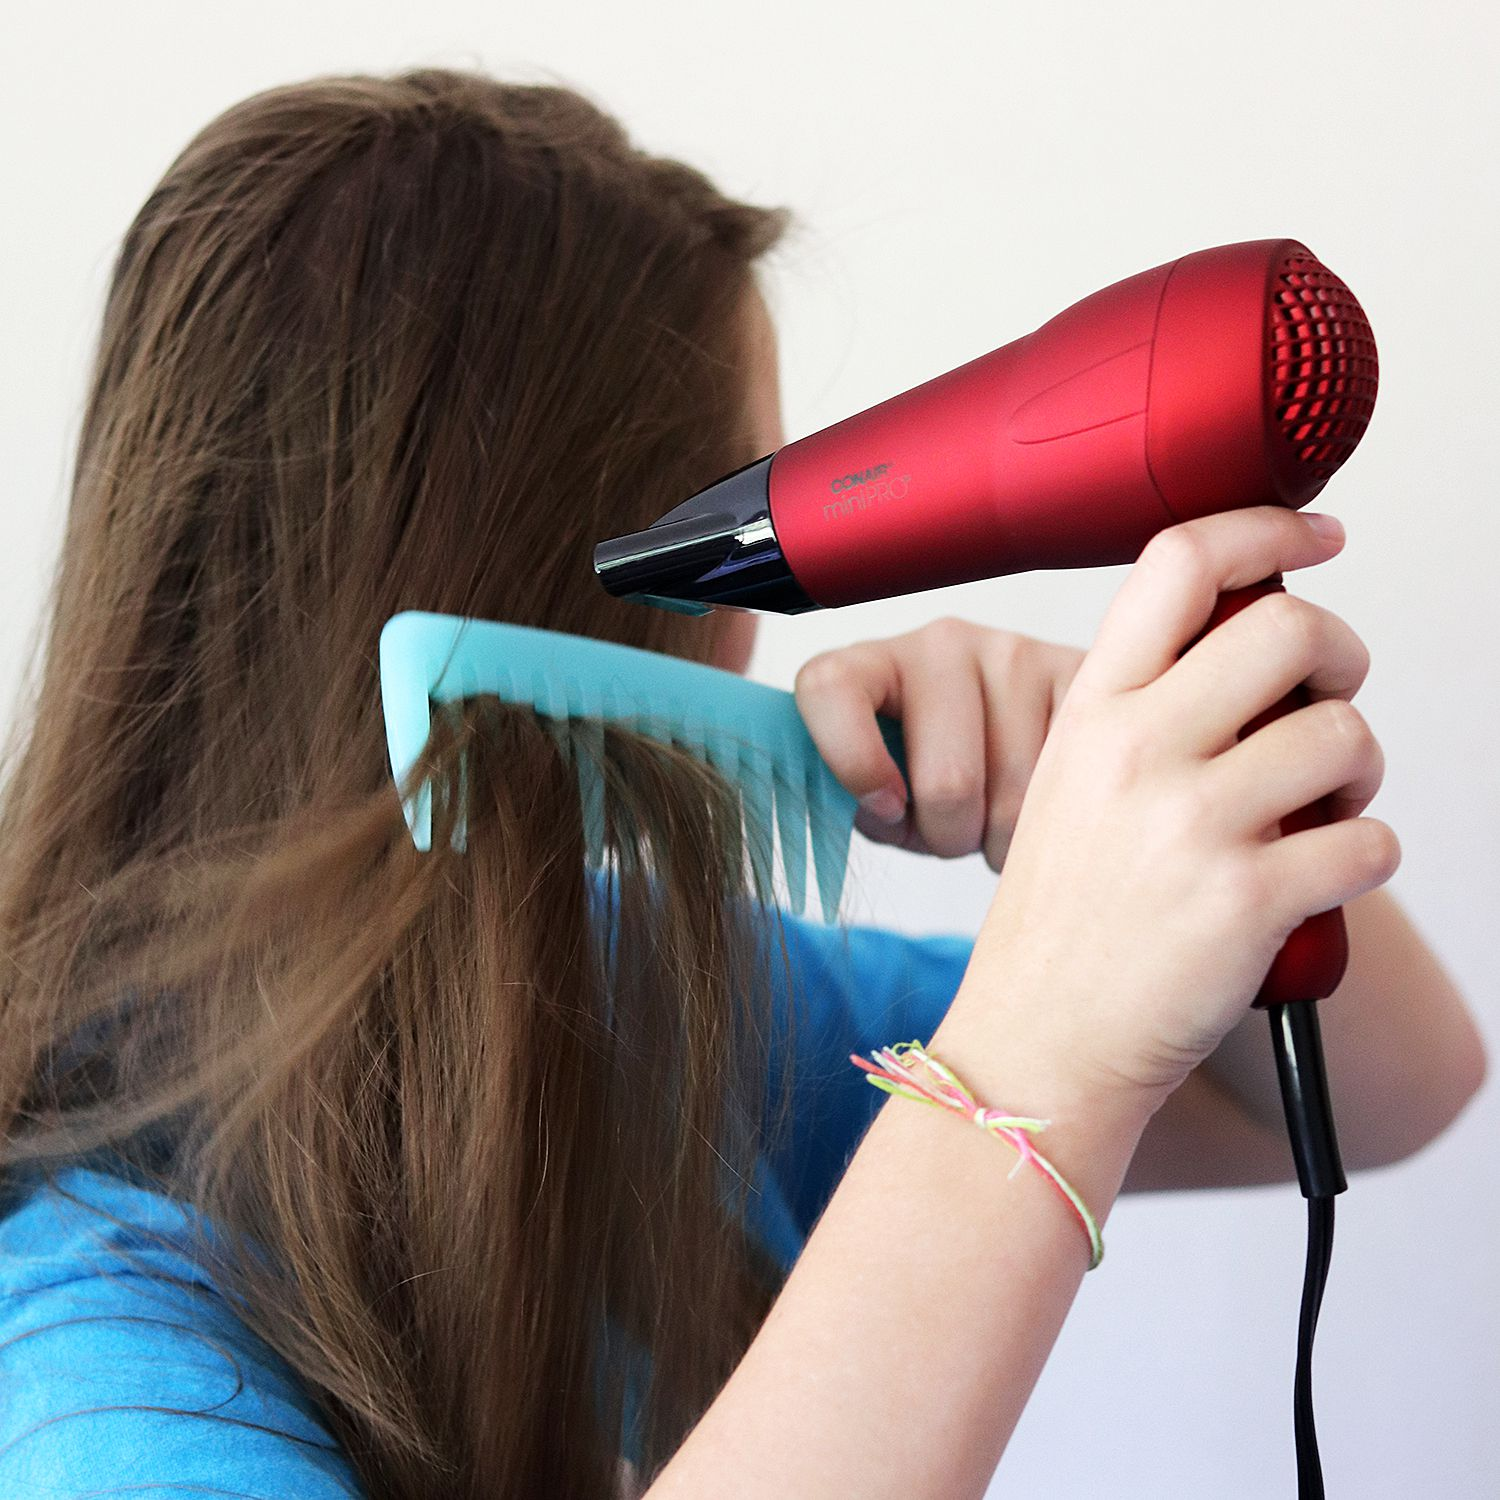 Conair miniPRO Tourmaline Ceramic Hair Dryer Review